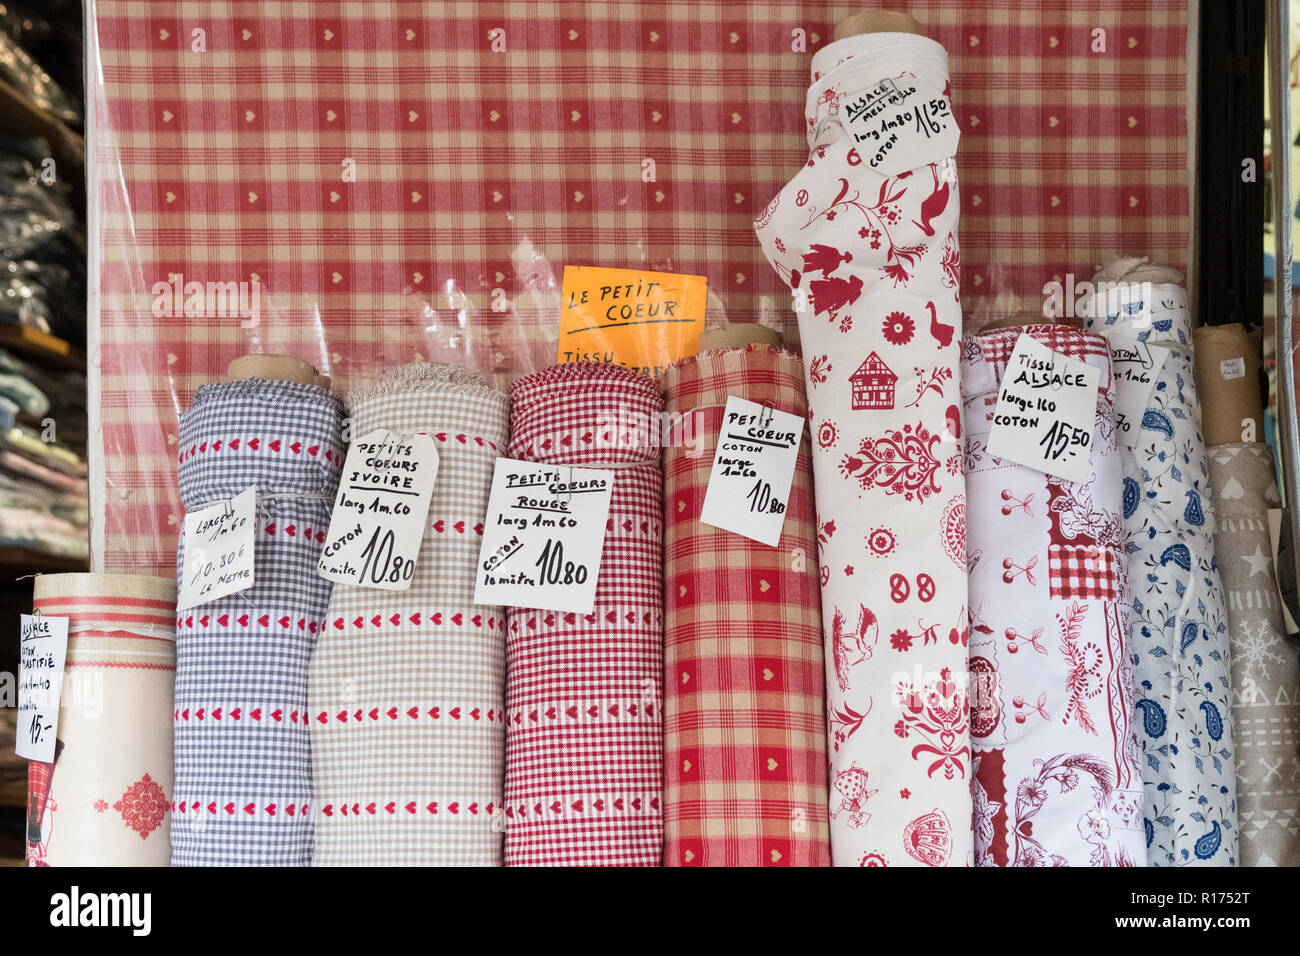 Alsatian traditional cotton fabric for sale in Strasbourg, France - Stock Image